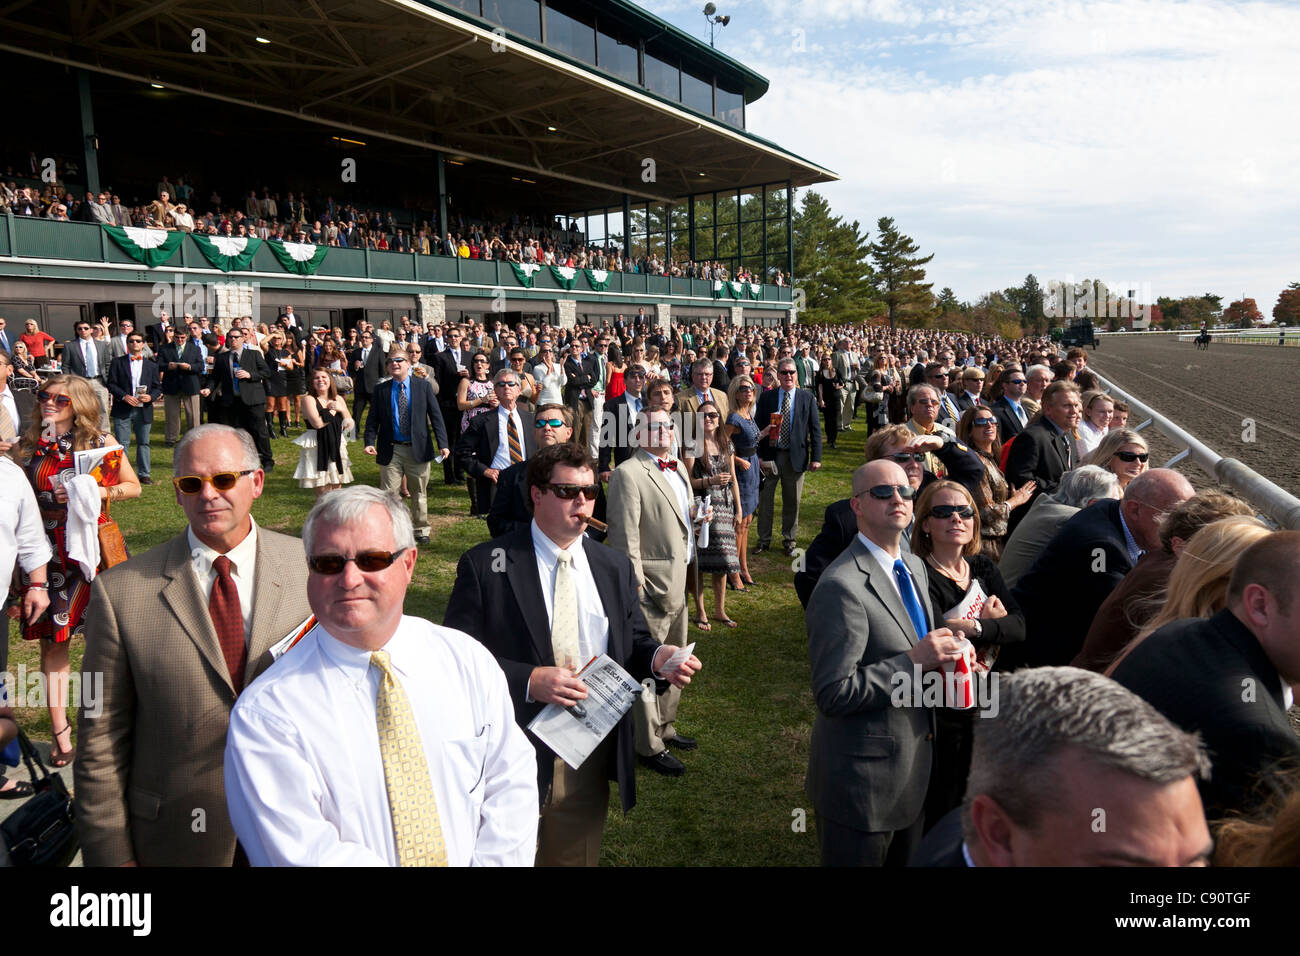 Visitors at the Keeneland Horse Race high-society visitors watching the race Lexington Kentucky United States of - Stock Image